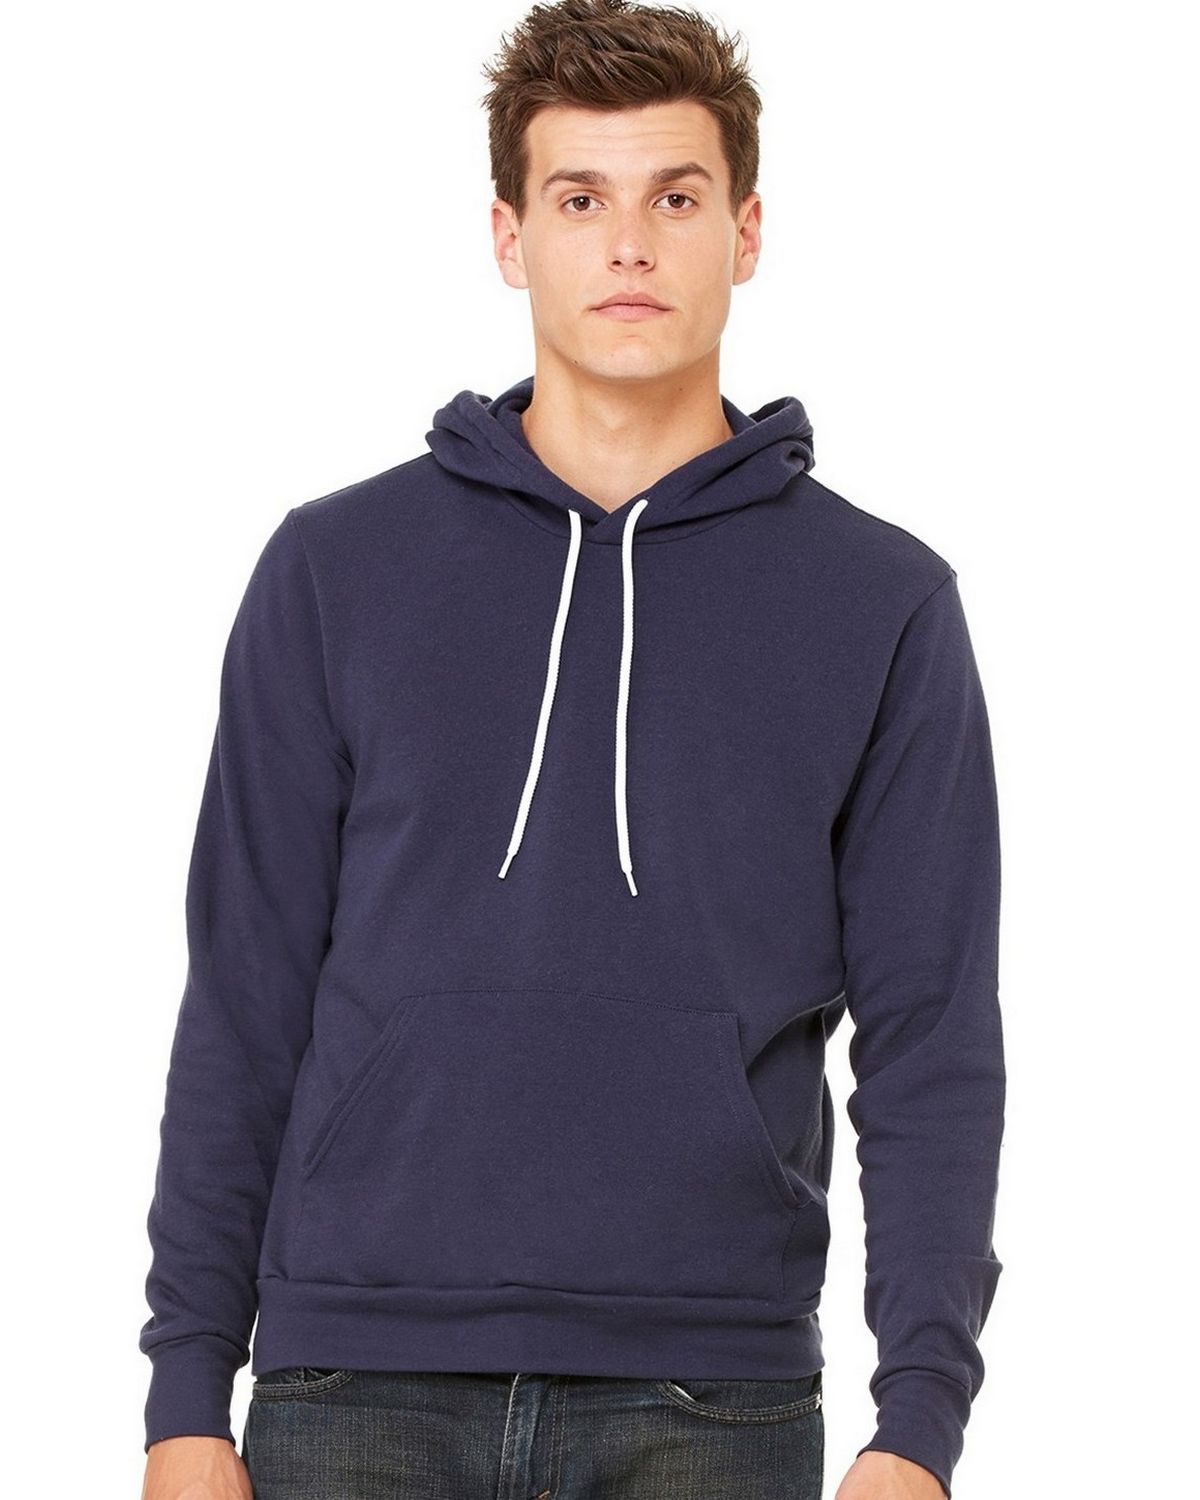 Bella + Canvas C3719 Unisex Pullover Hoodie - Heather Navy - 2X C3719